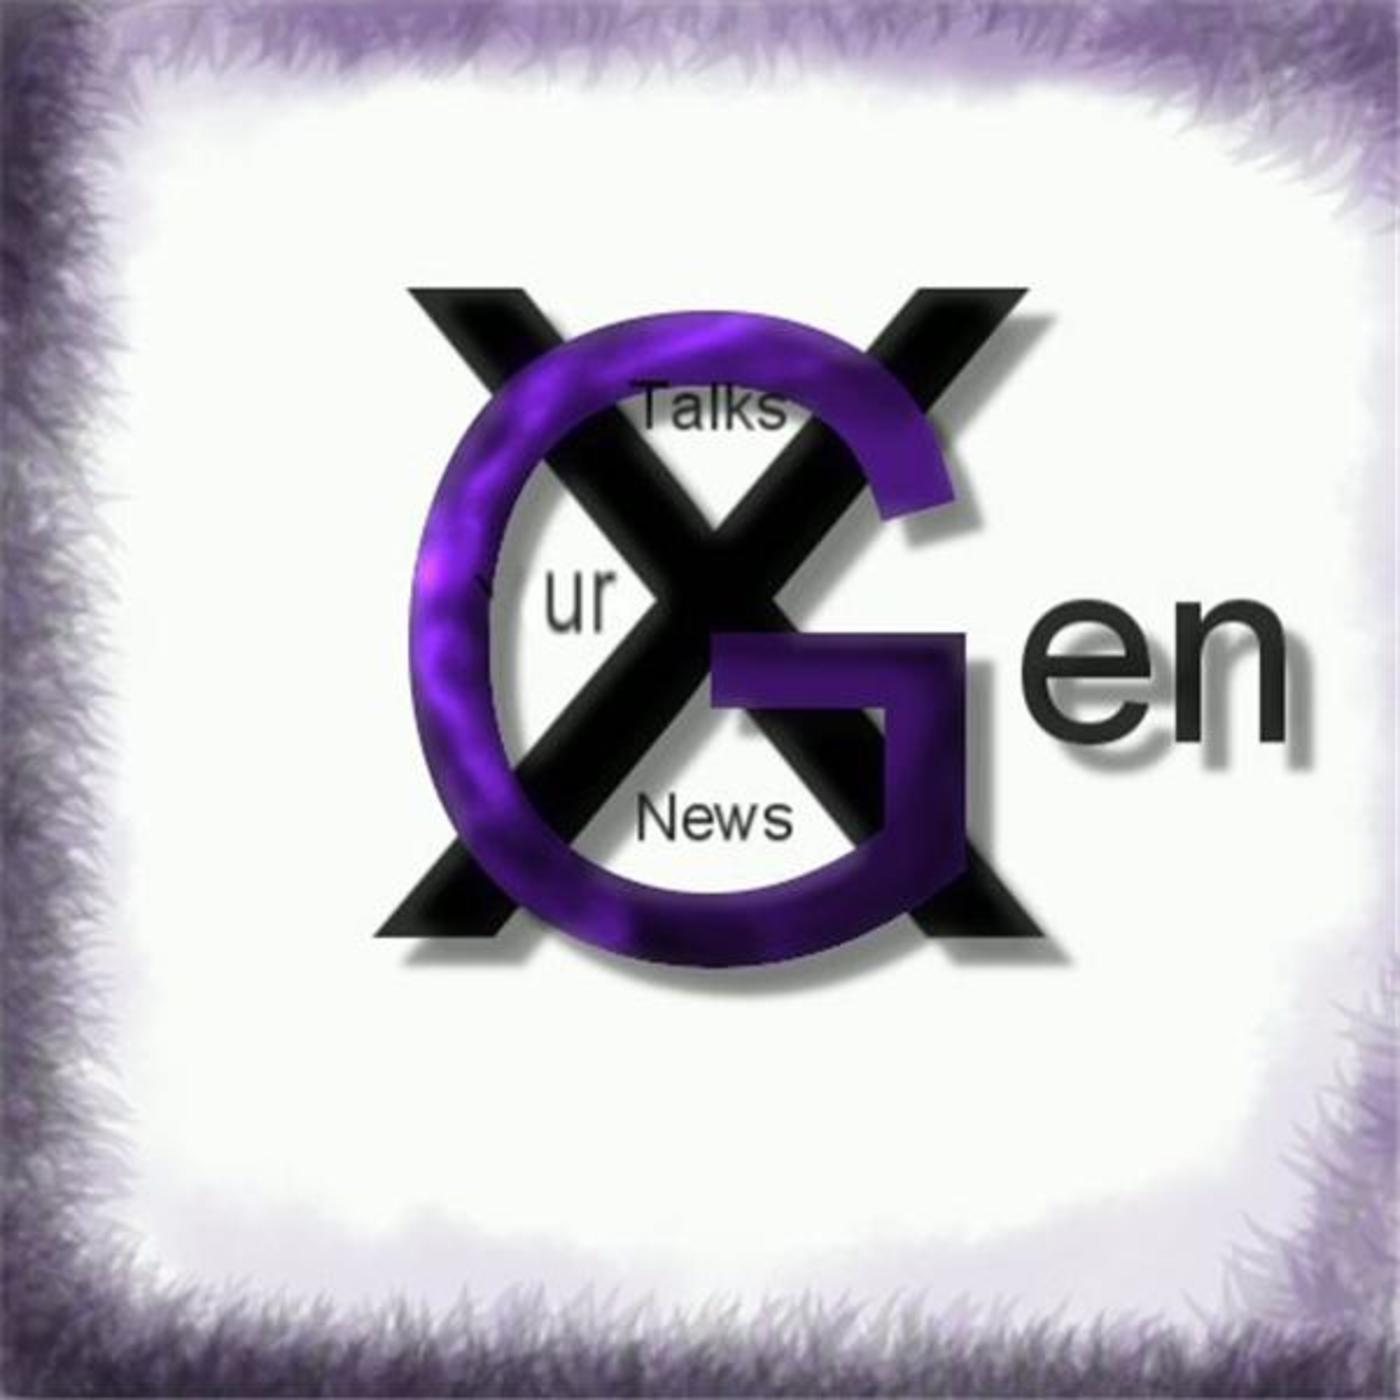 GenXTalksUrNews Radio & Talkshow